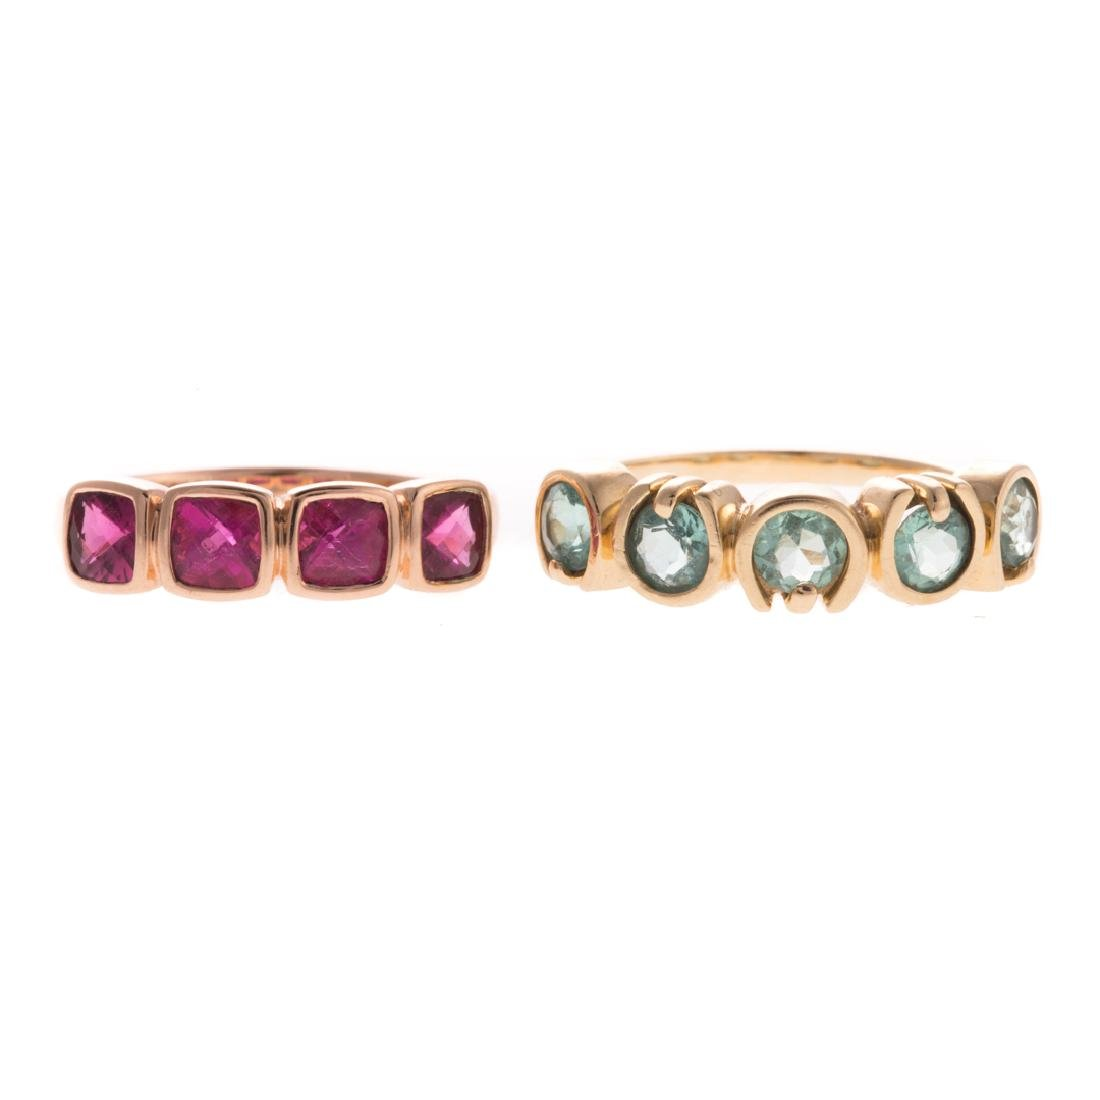 A Pair of 14K Gemstone Band Rings